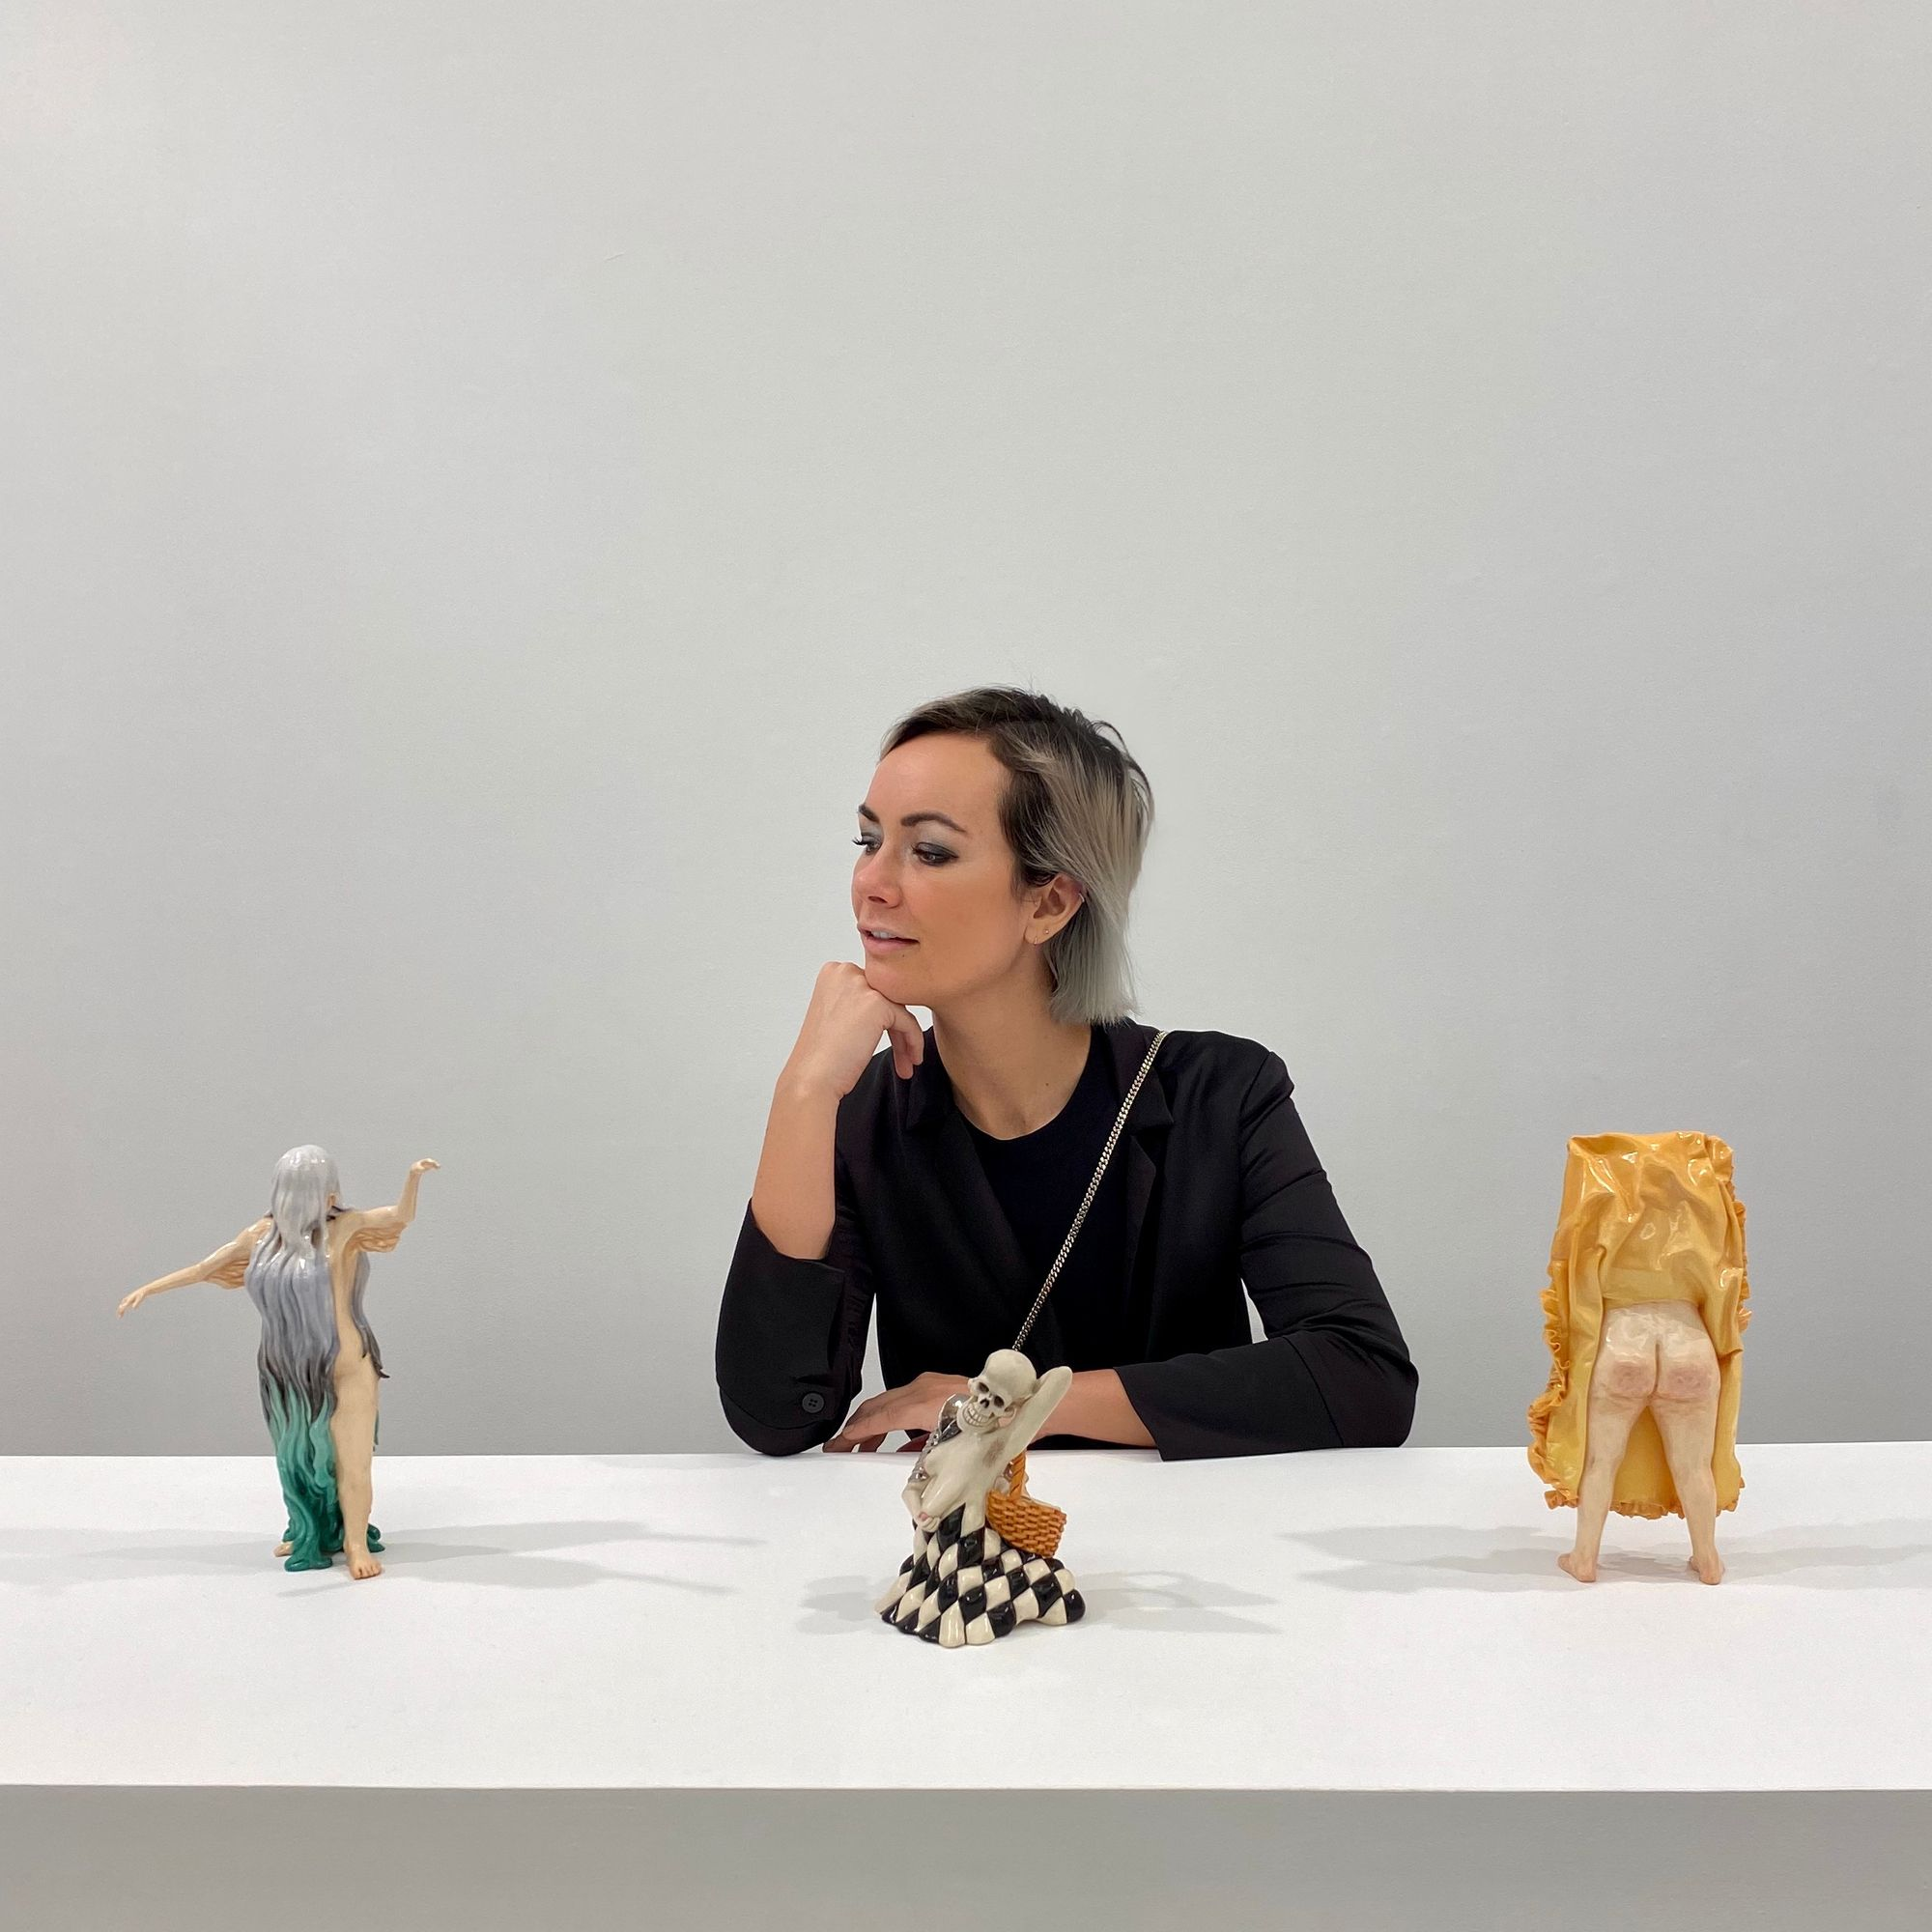 Jessica stoller at ppow gallery in 2020 chelsea art